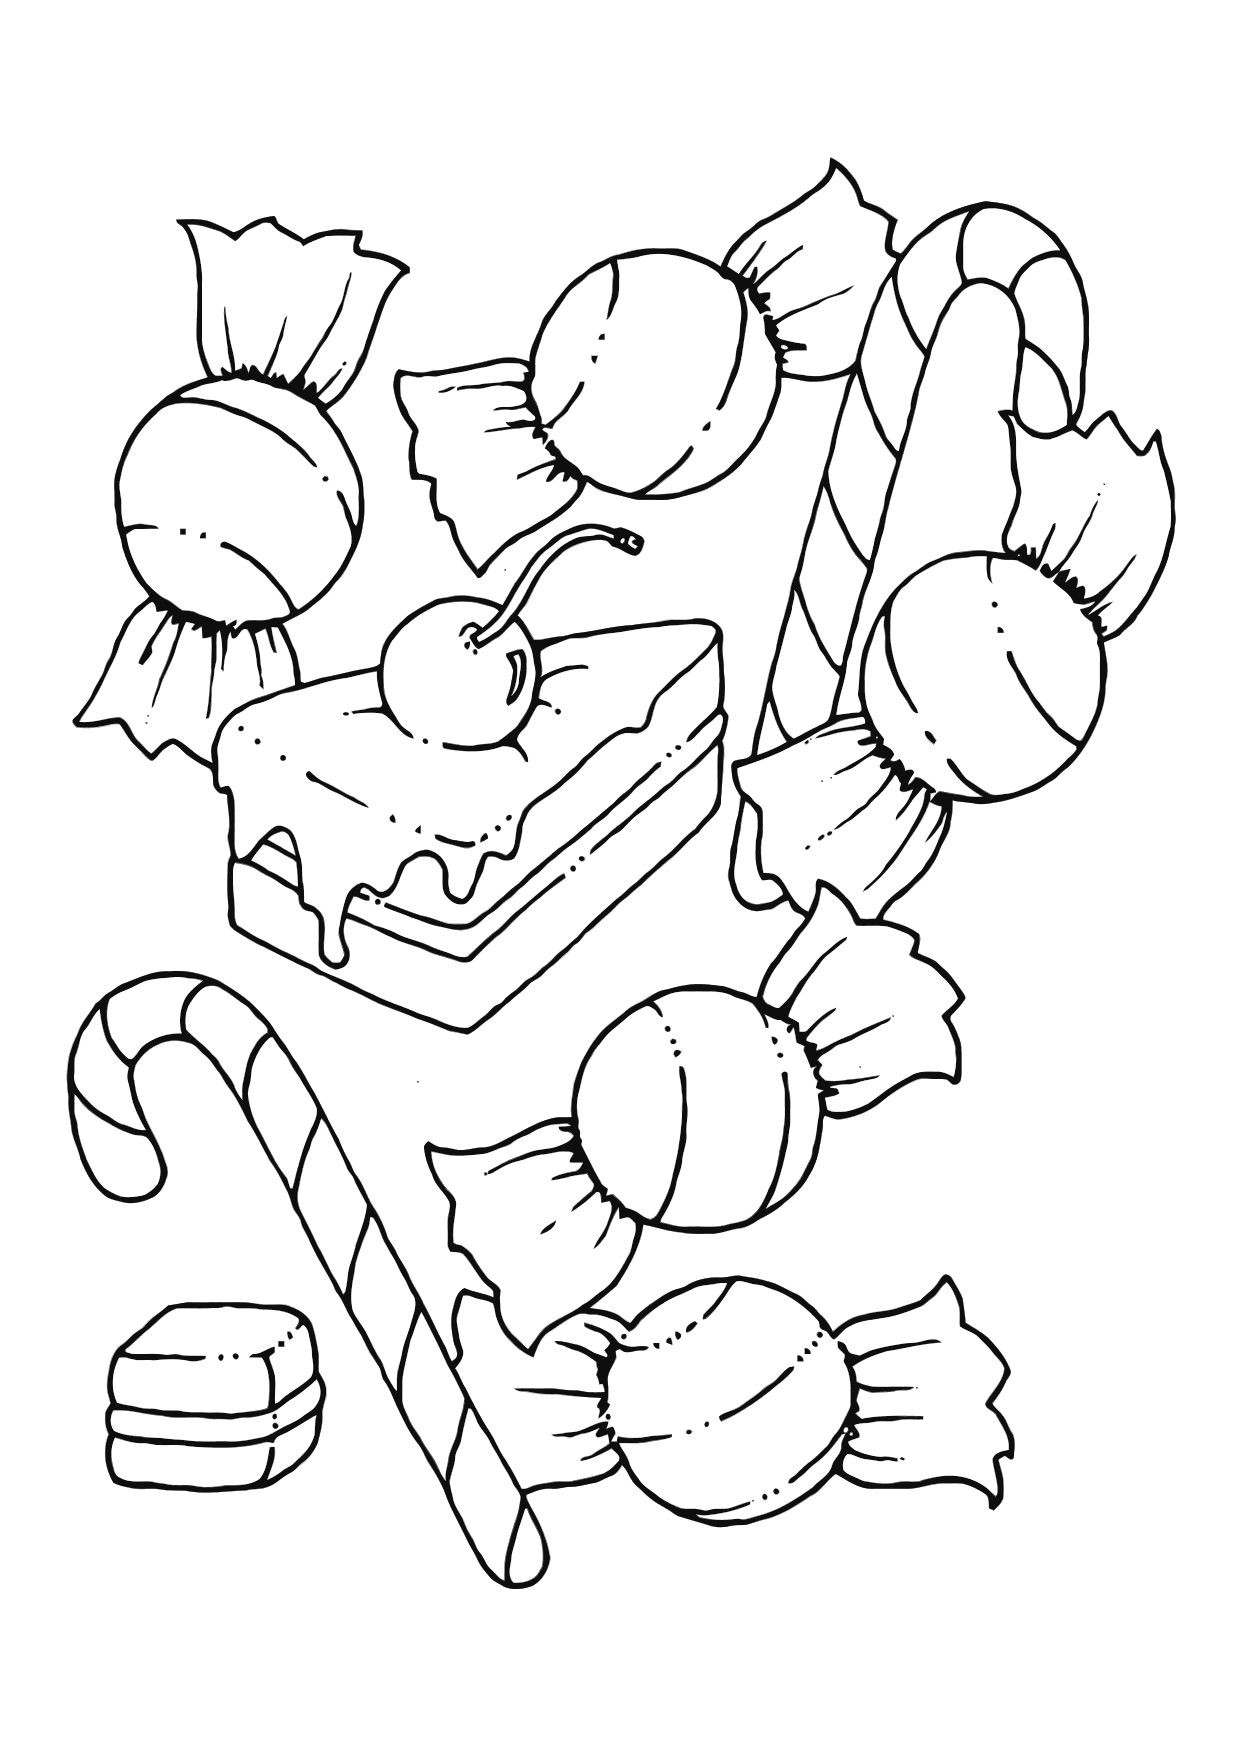 Coloring Pages For Kids Printables  Free Printable Candy Coloring Pages For Kids